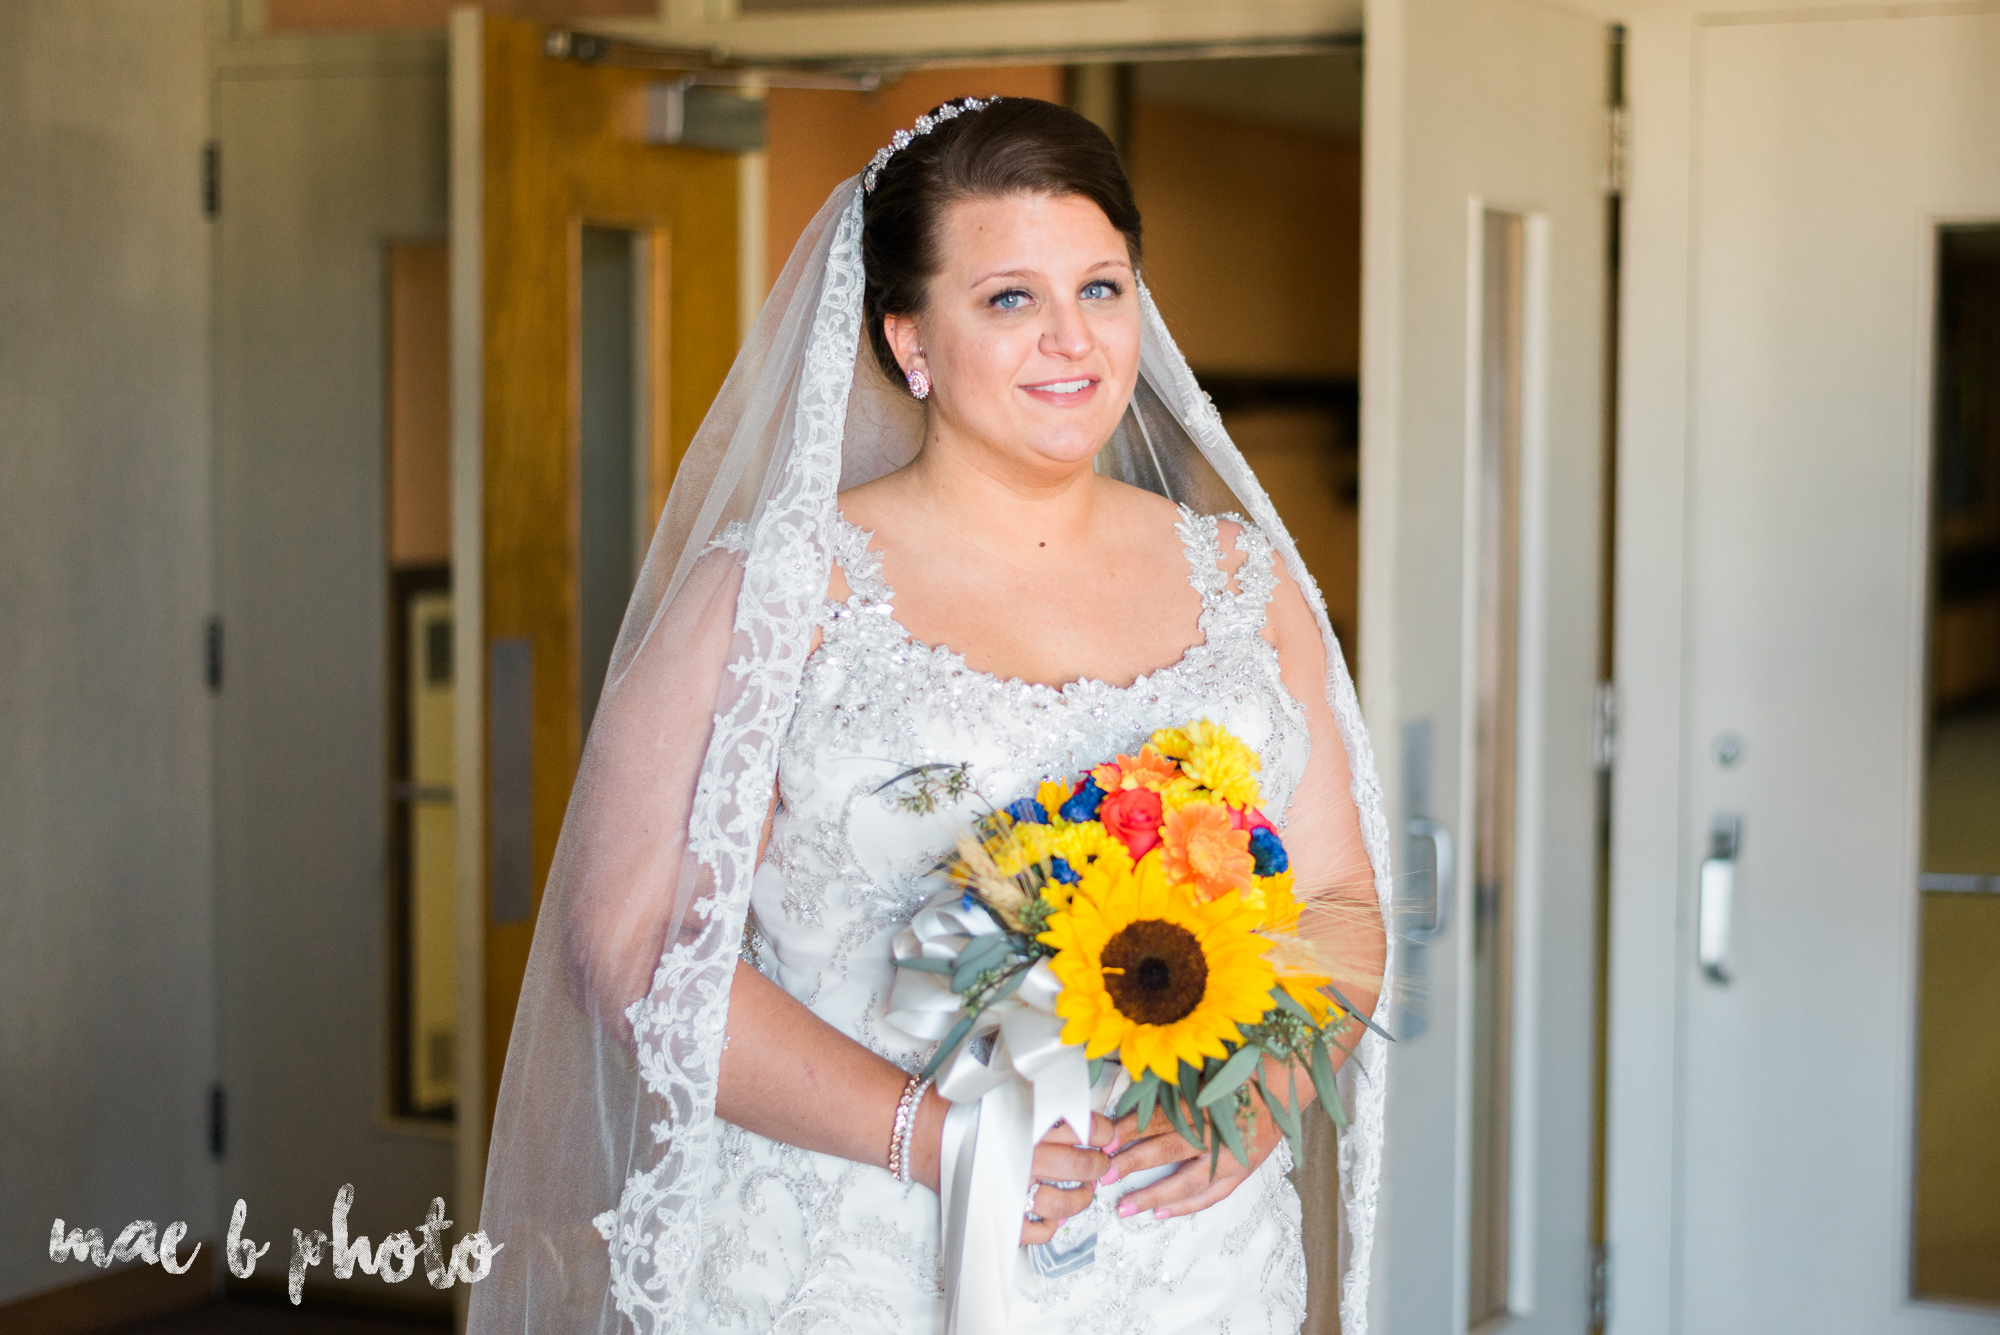 kaylynn & matt's fall zoo wedding at the cleveland metroparks zoo in cleveland ohio photographed by mae b photo-3.jpg